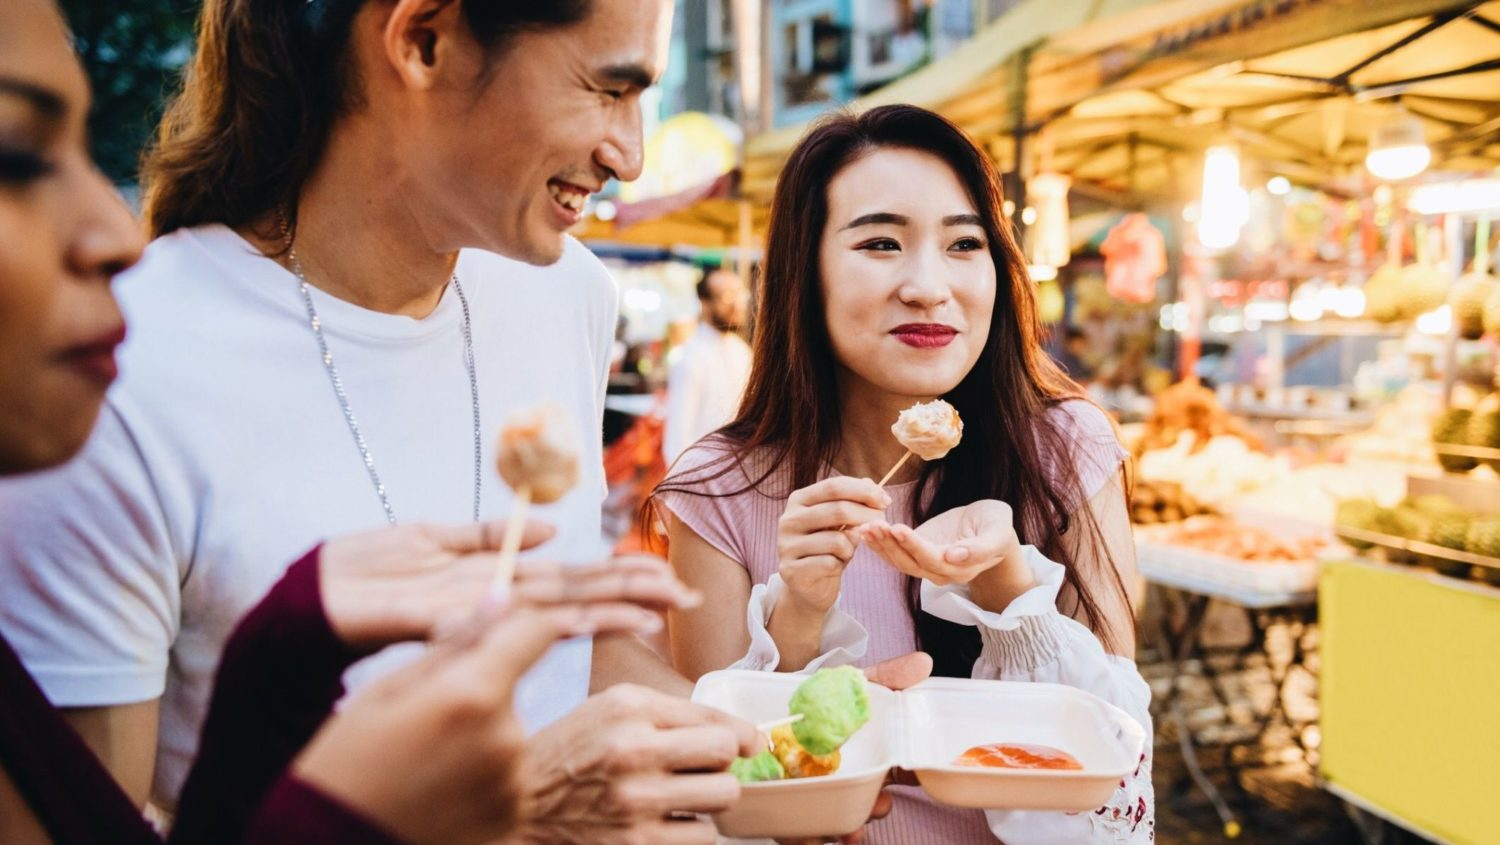 Vegan Meat Demand to Increase By 200% in China and Thailand By 2025